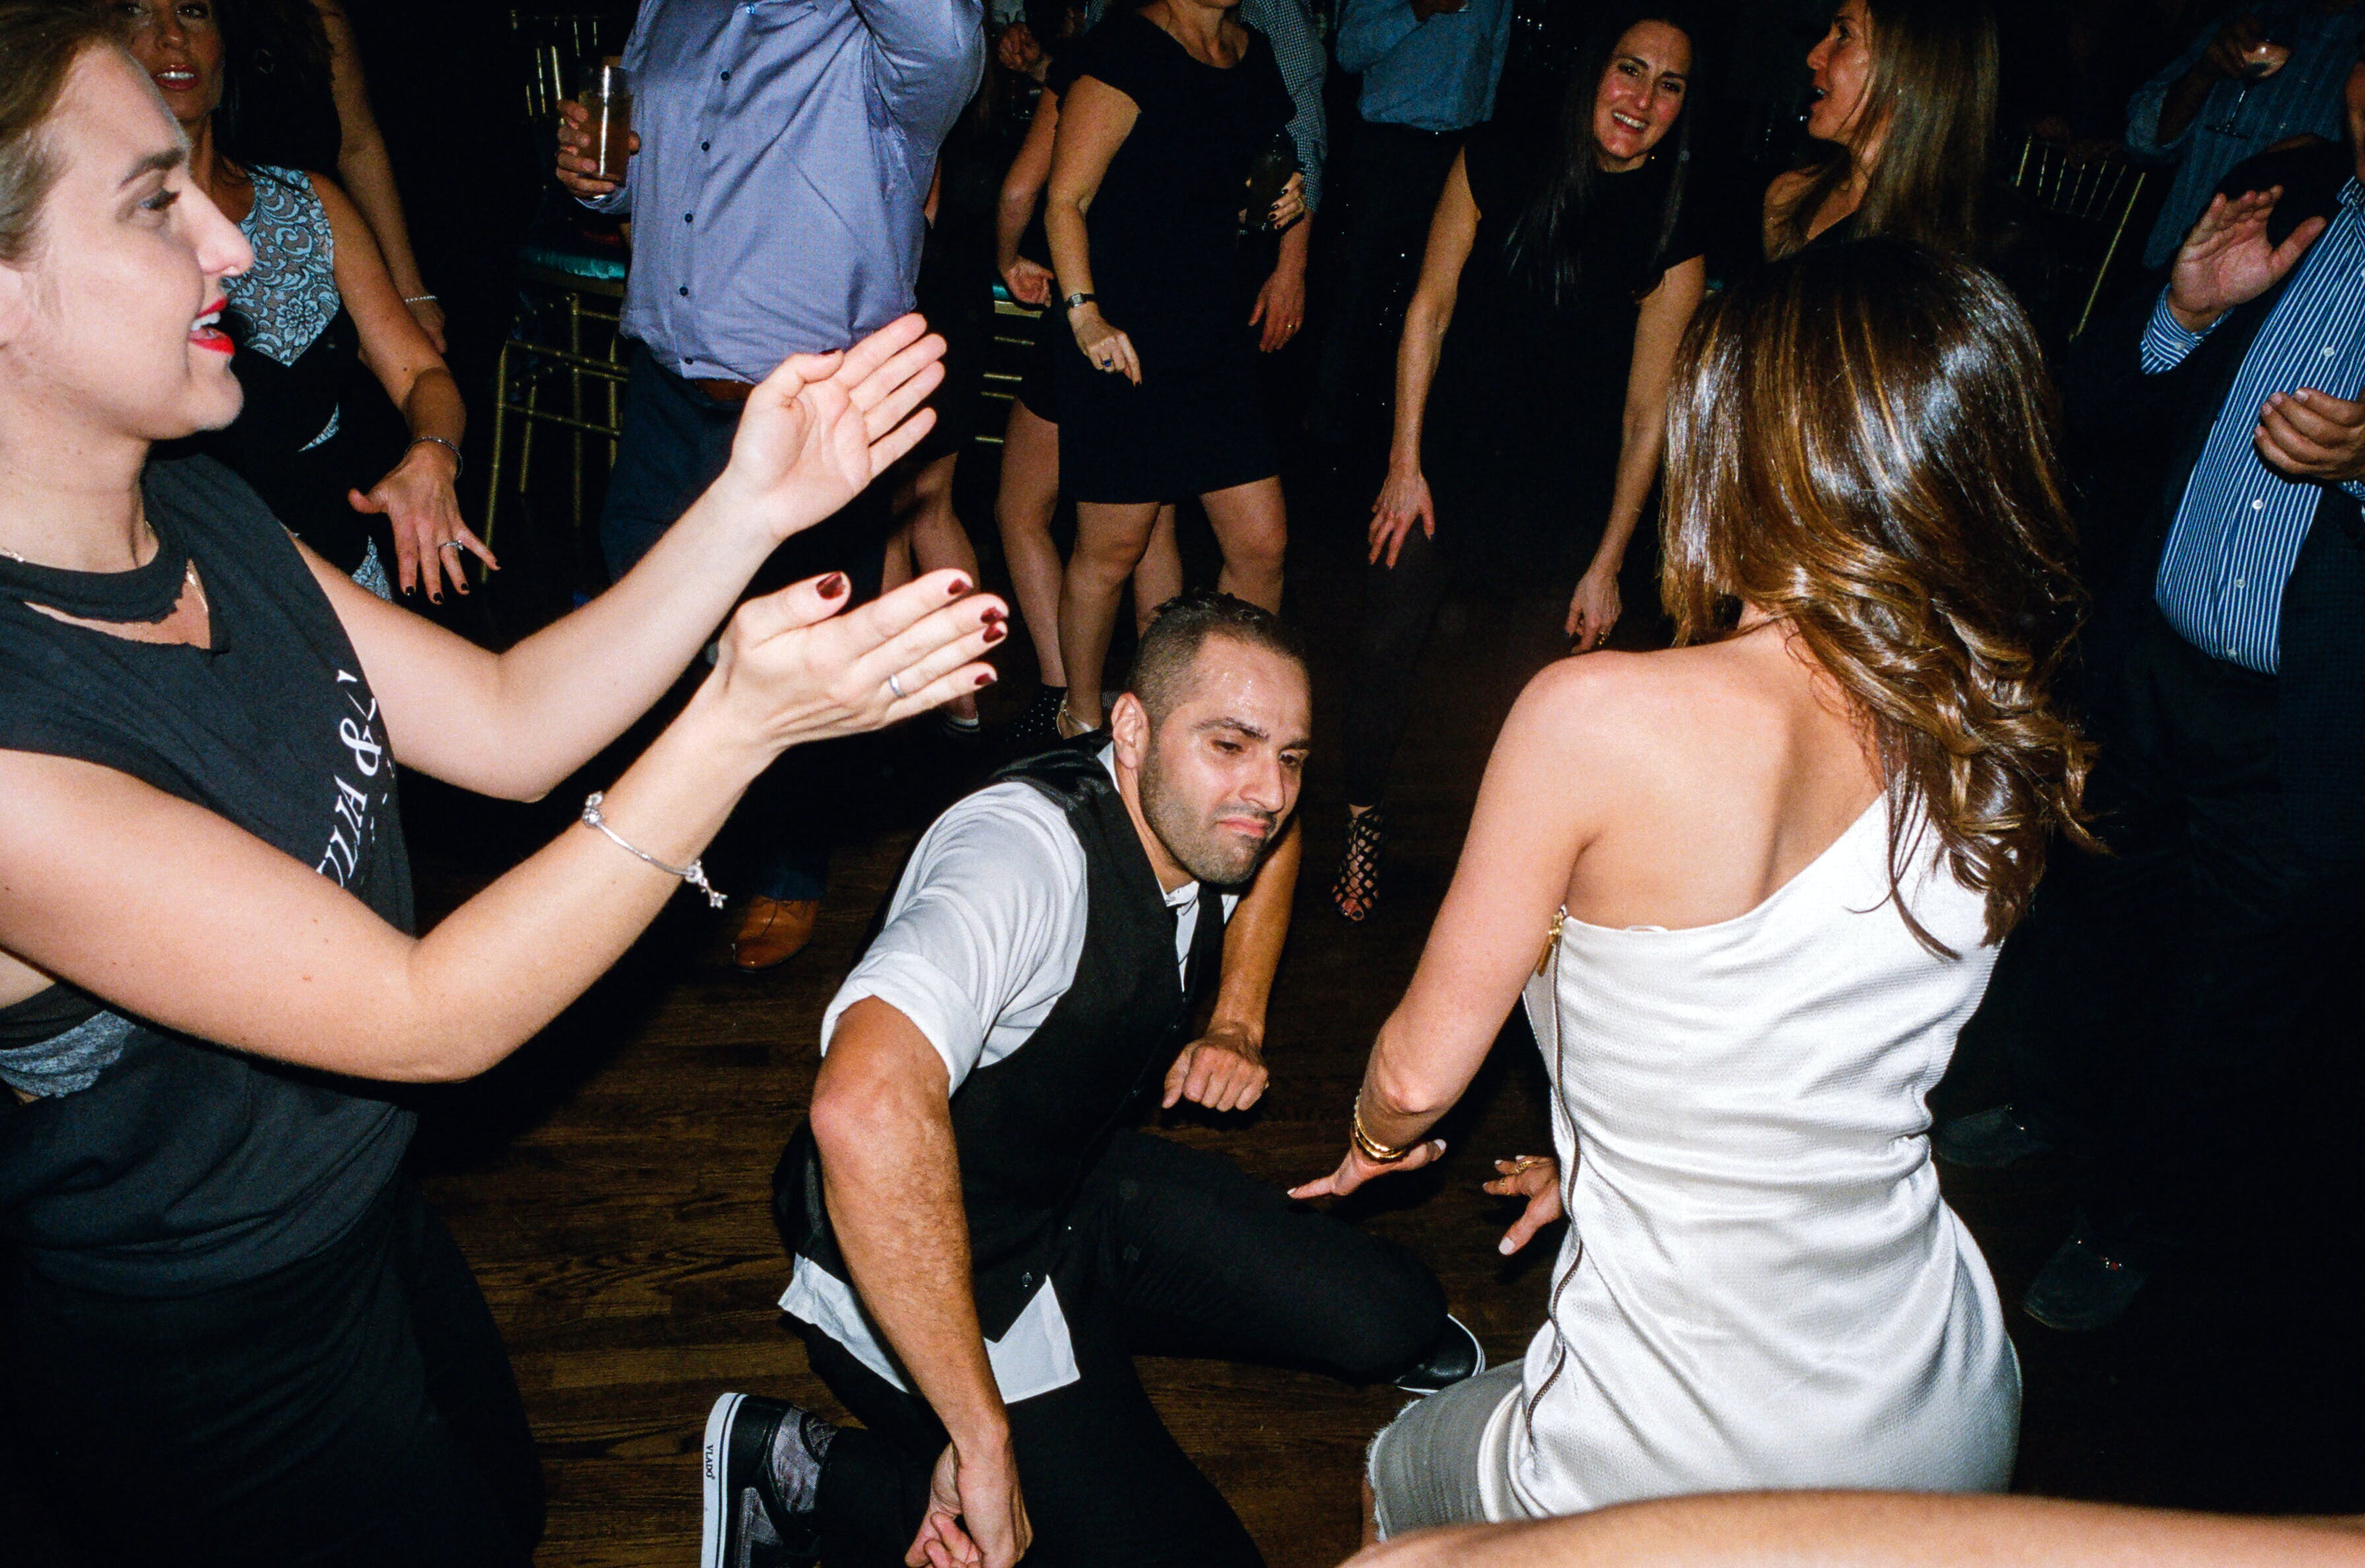 Bar mitzvah party motivators aren't just for kids. According to Ricardo, the best parties end with all ages on the floor.